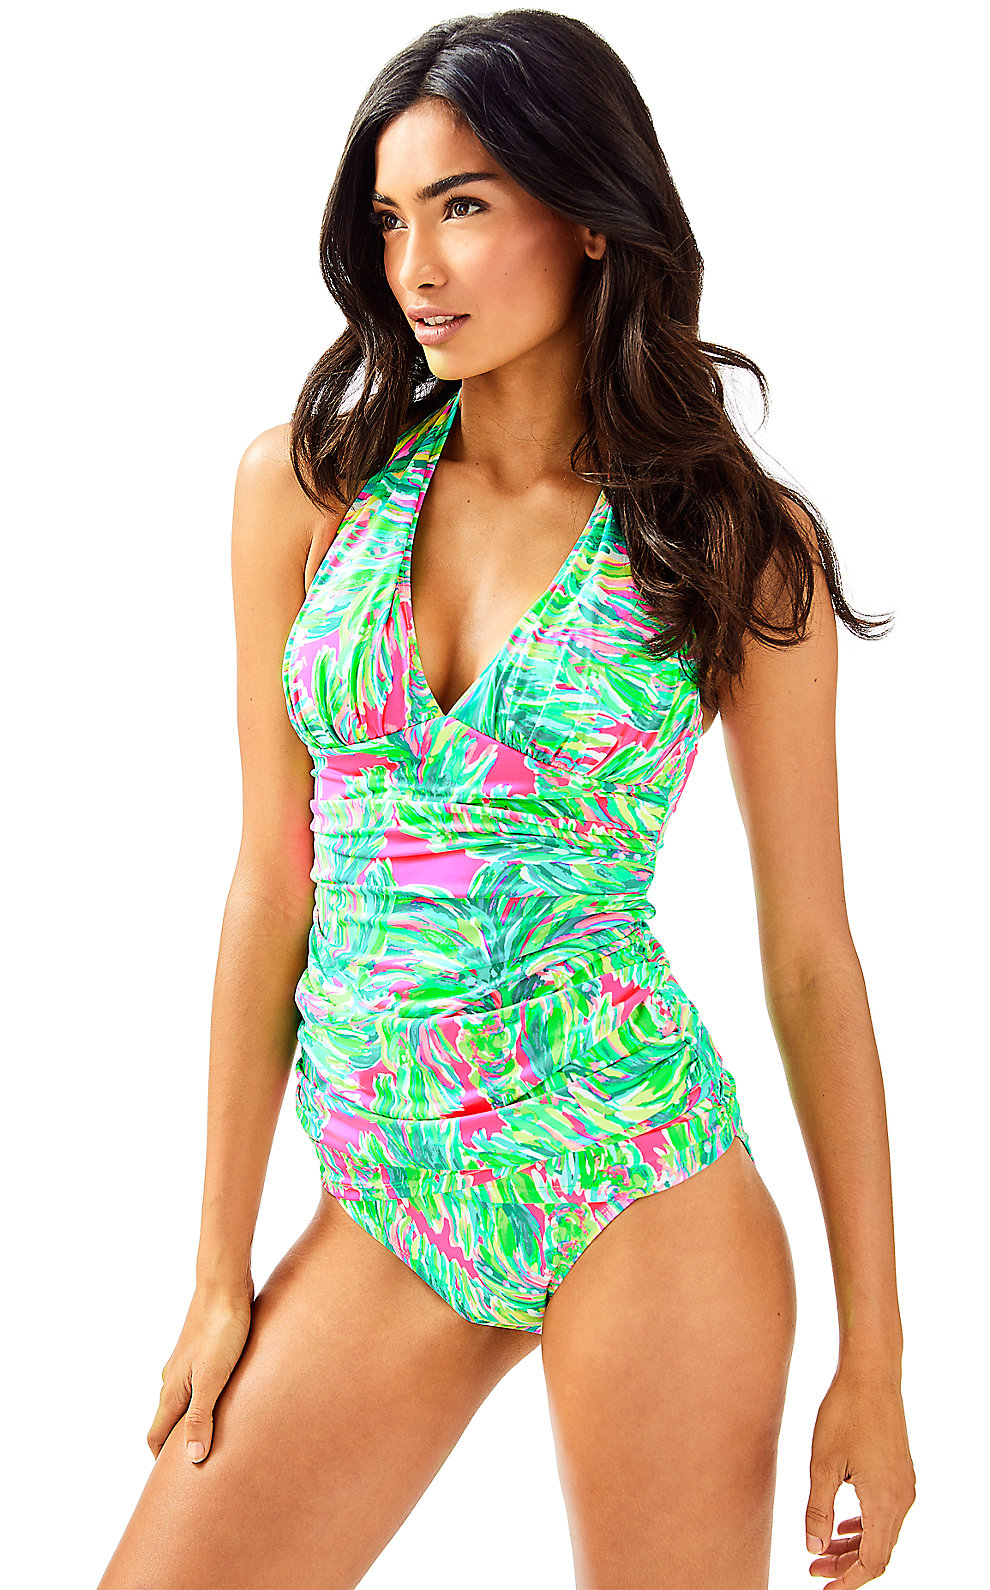 Lilly Pulitzer Lilly Pulitzer Bliss Halter Tankini Top